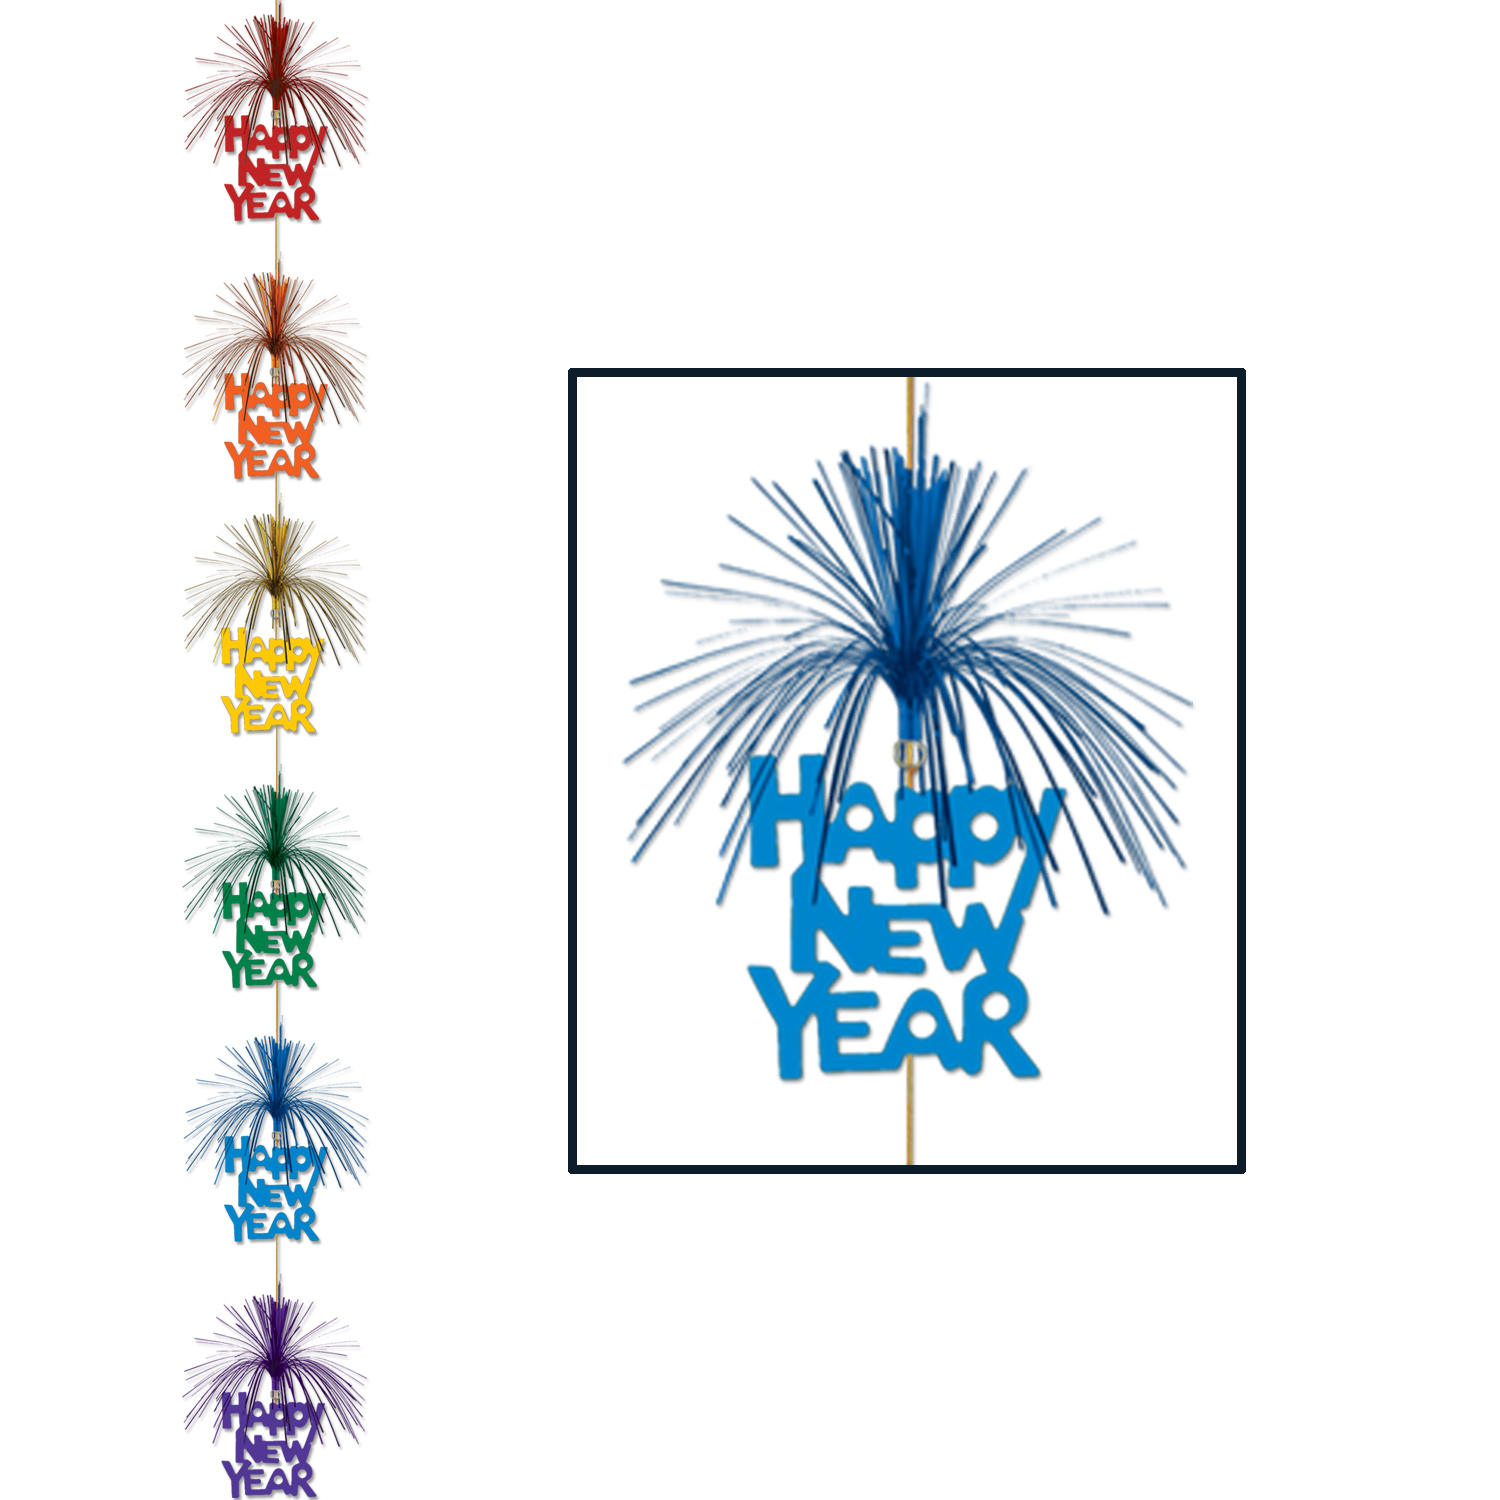 Happy New Year Firework Stringer (Pack of 12) Stringer, Hanging Decoration, 7 feet, Dangler, Multi-Color, Fireworks, Inexpensive decorations, Bulk, Wholesale, Party Favors, NYE